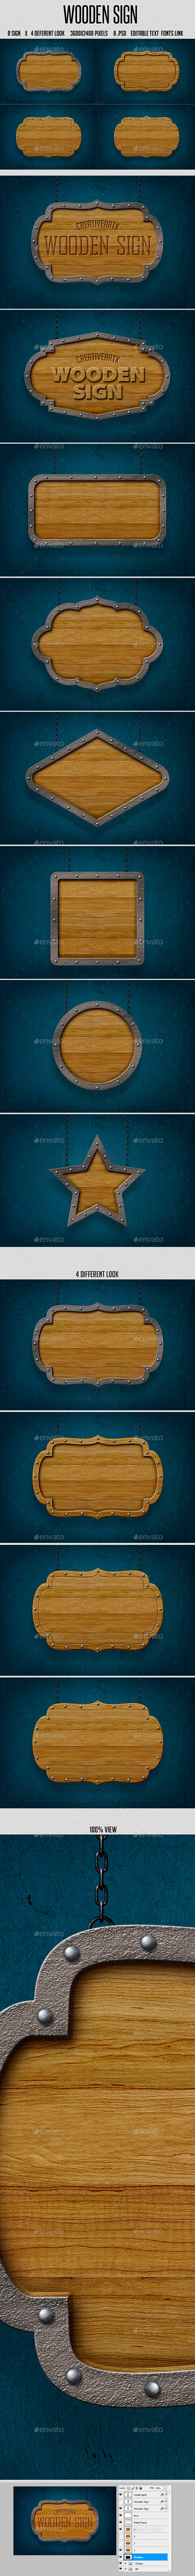 GraphicRiver Wooden Sign 10271306